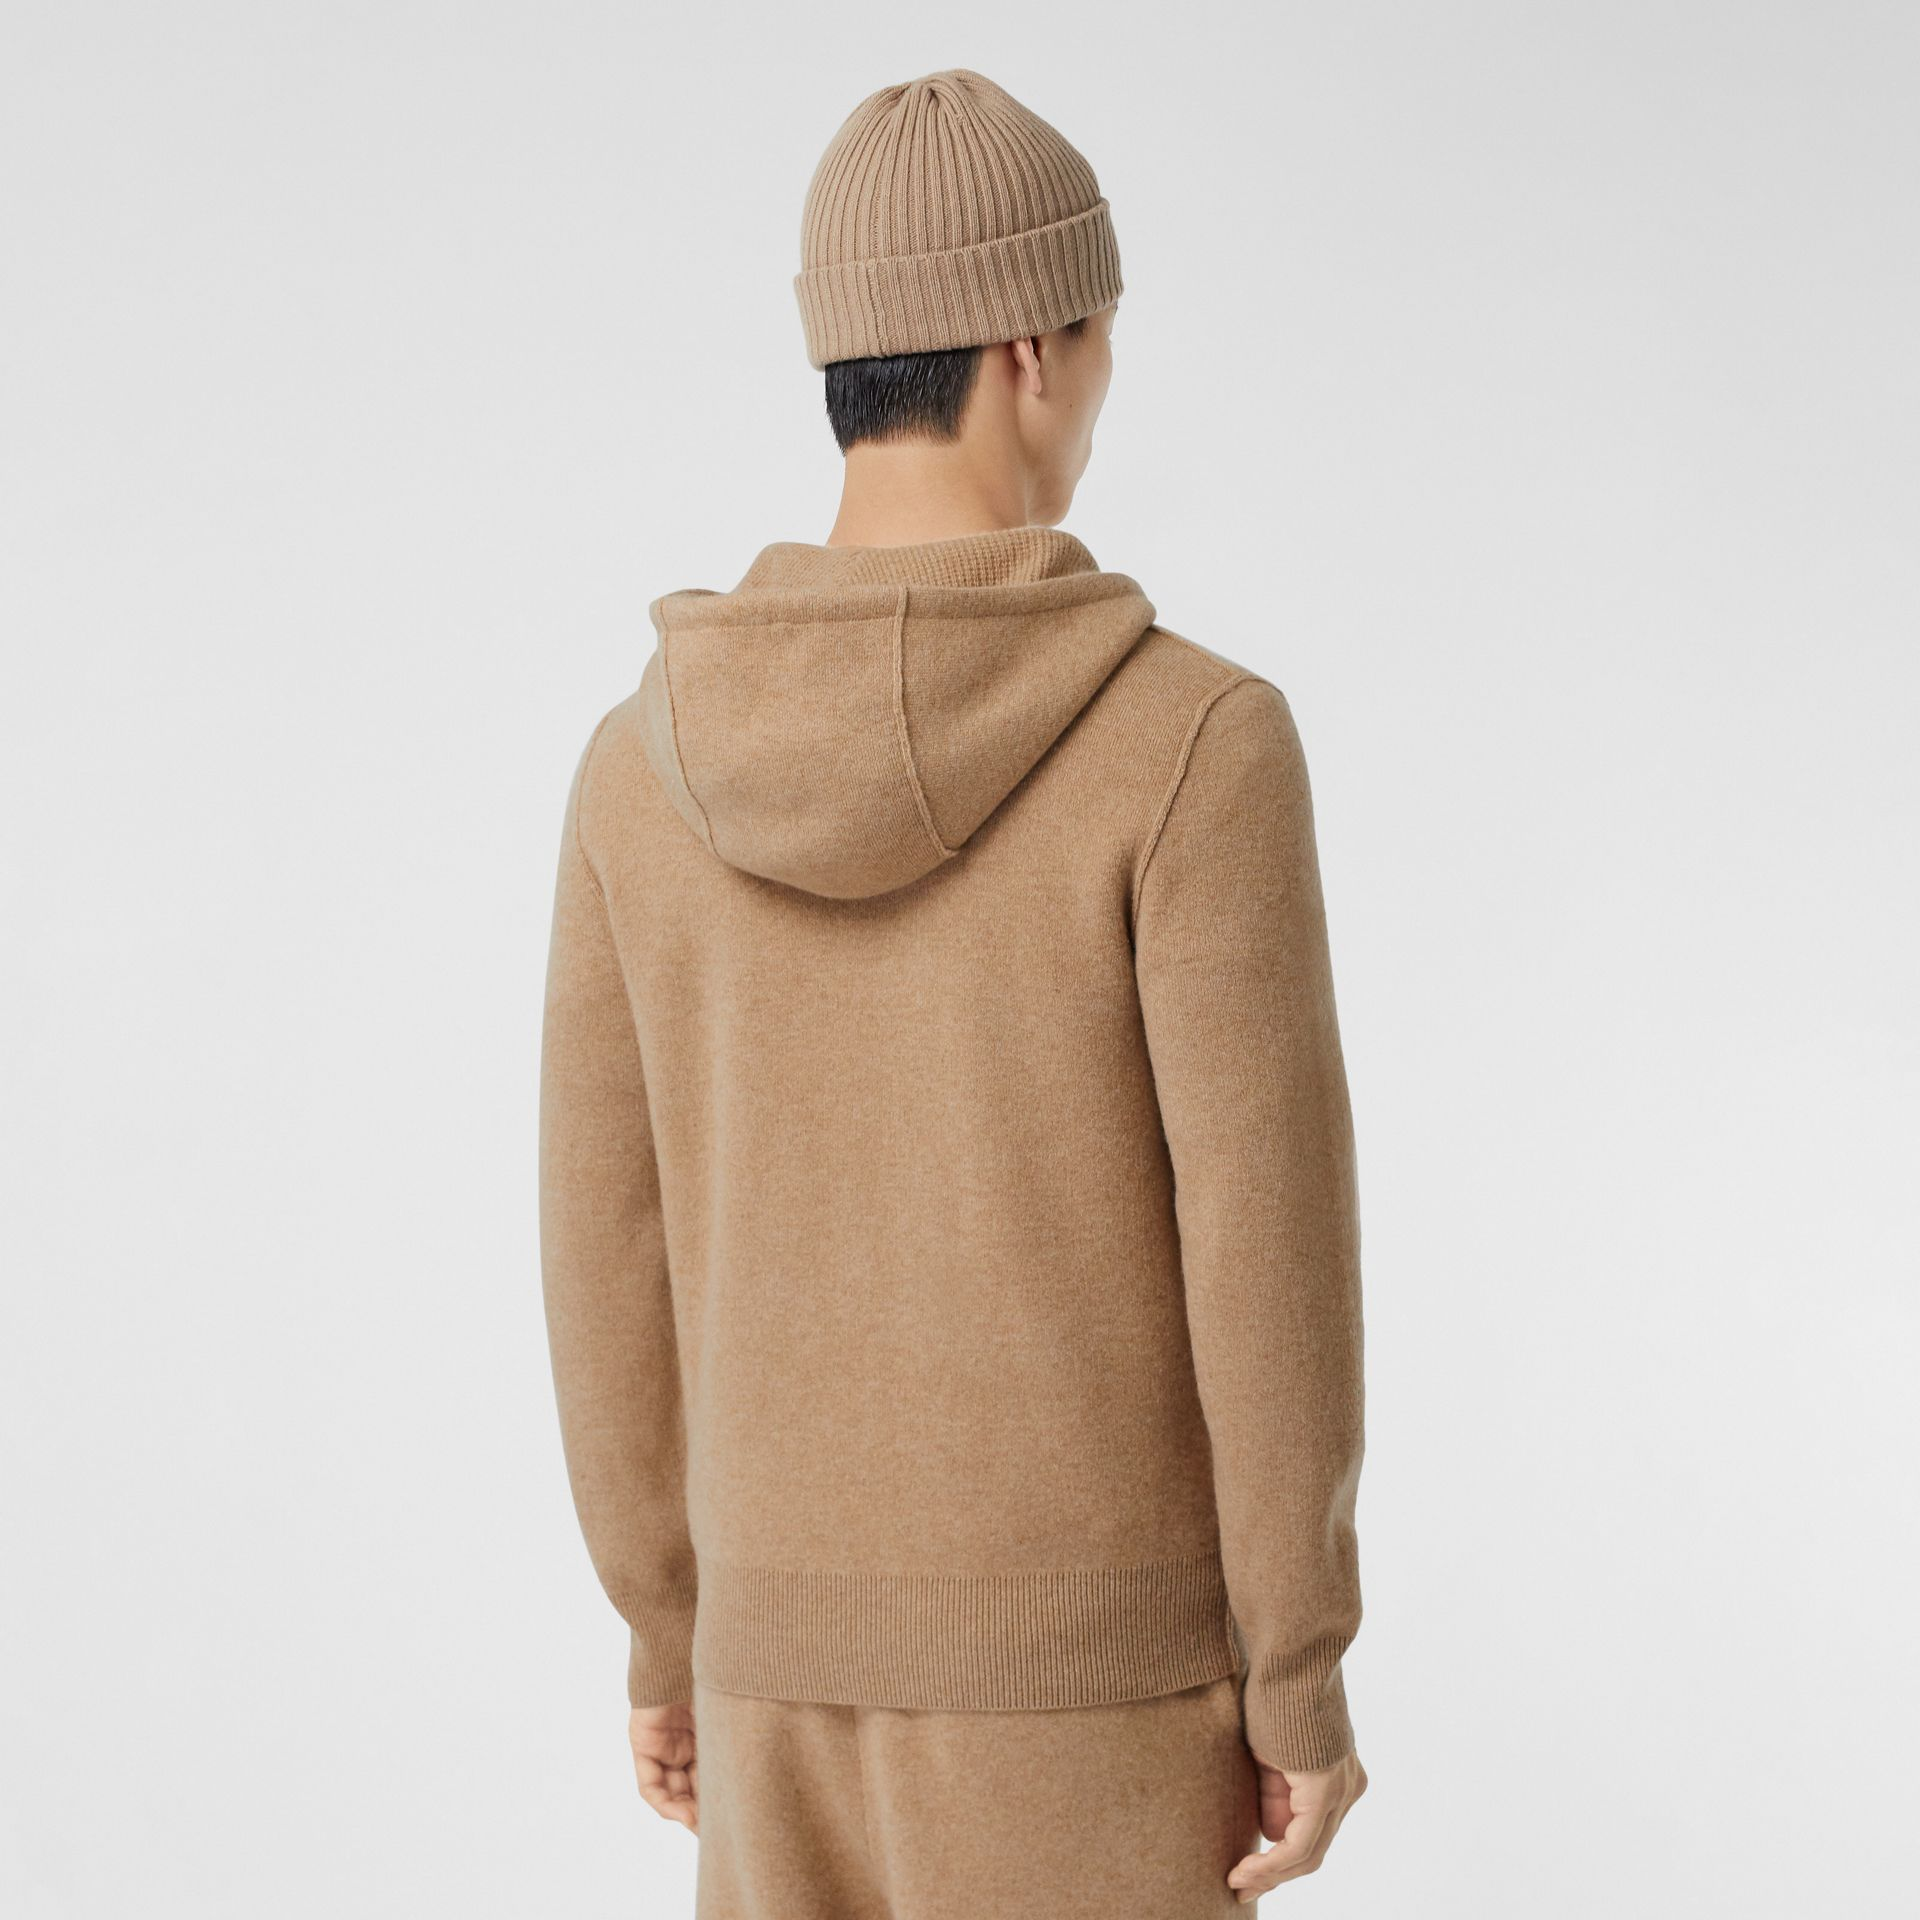 Monogram Motif Cashmere Blend Hooded Top in Pale Coffee - Men | Burberry - gallery image 2